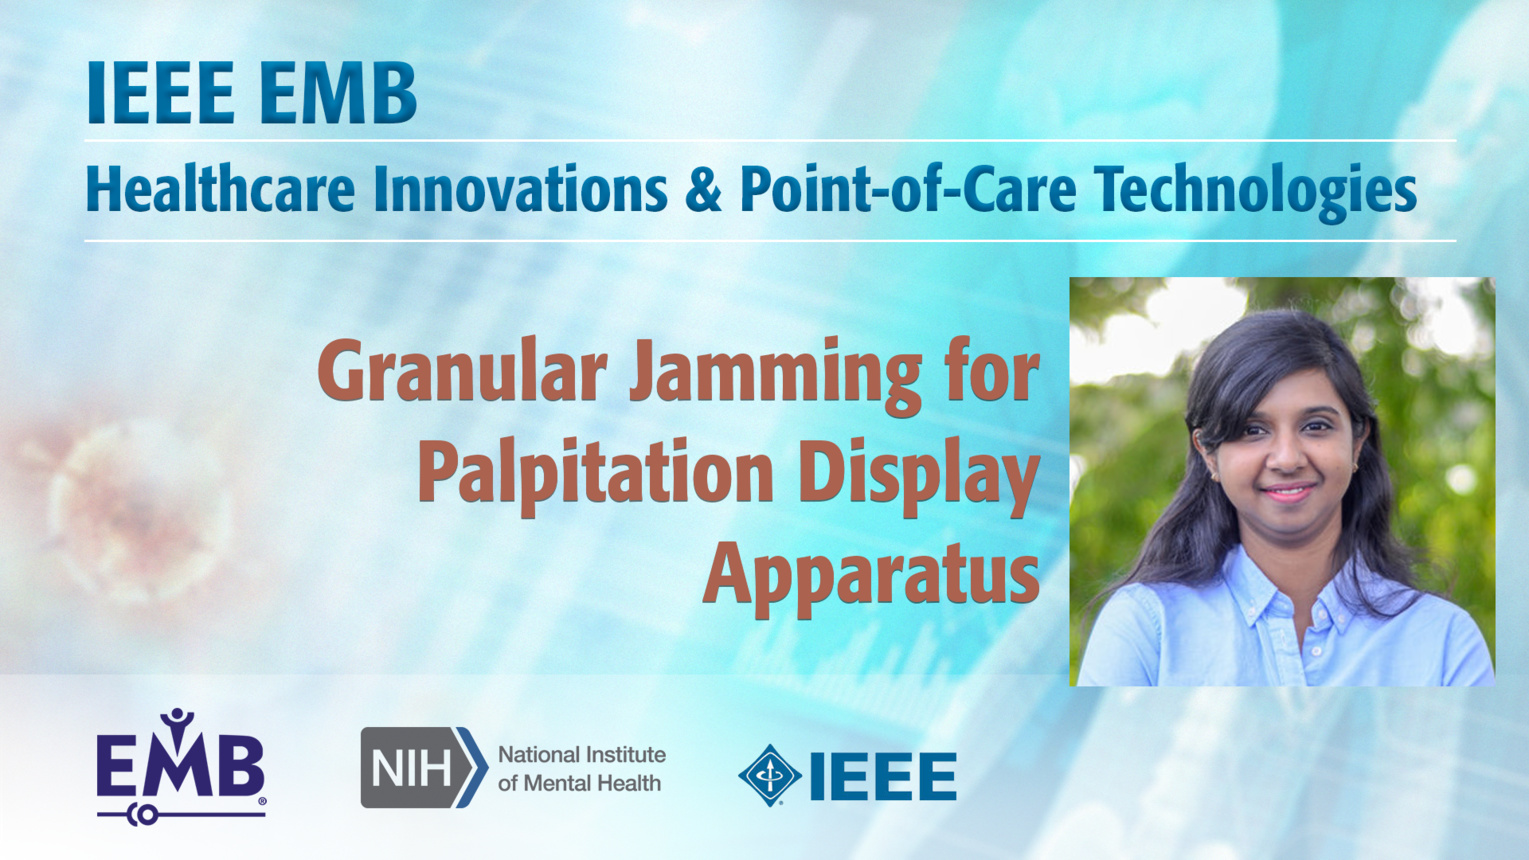 Prototyping & Feasibility of Palpitation Display Apparatus - Sakura Sikander - IEEE EMBS at NIH, 2019